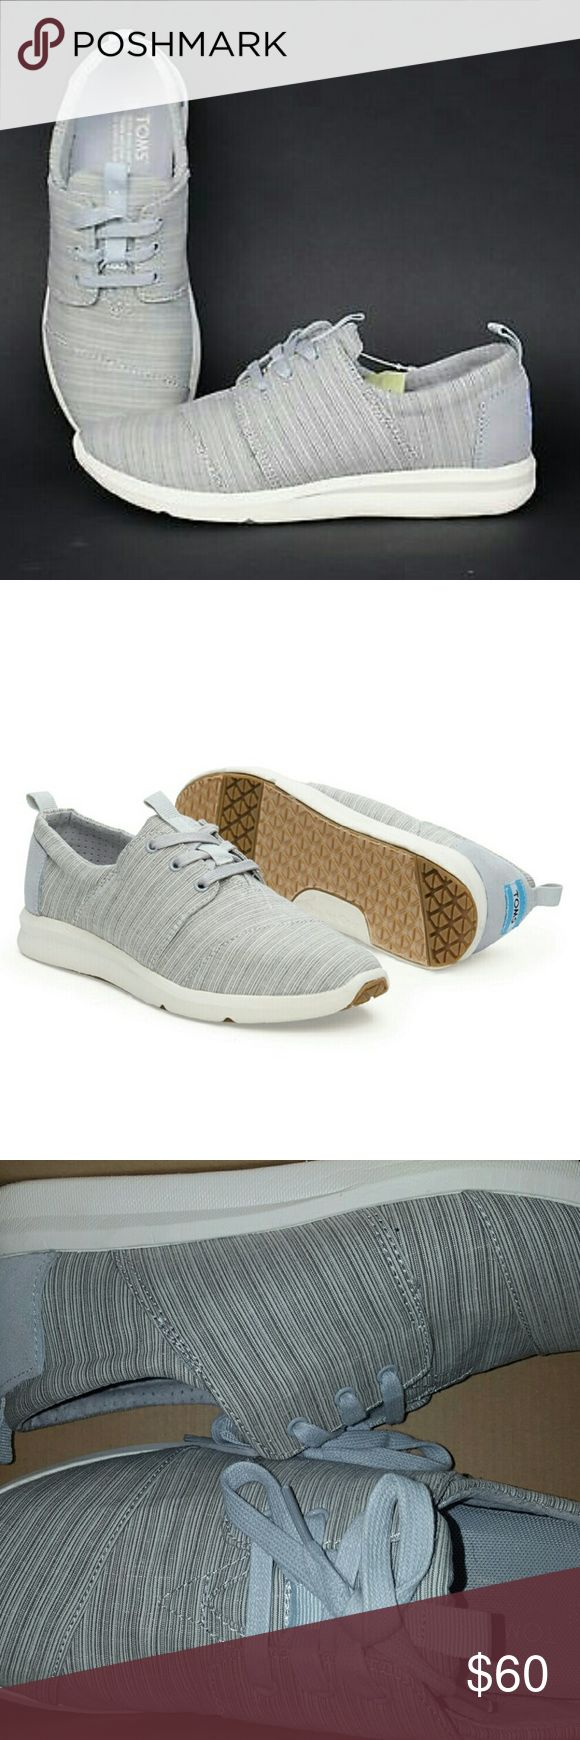 NIB Tom's Del Rey sneaker sz 8 Brand new Tom's sneaker! Color is called vapor blue, but as you can see, the color is really very mild blue or more grey. Very clean look and style! TOMS Shoes Sneakers